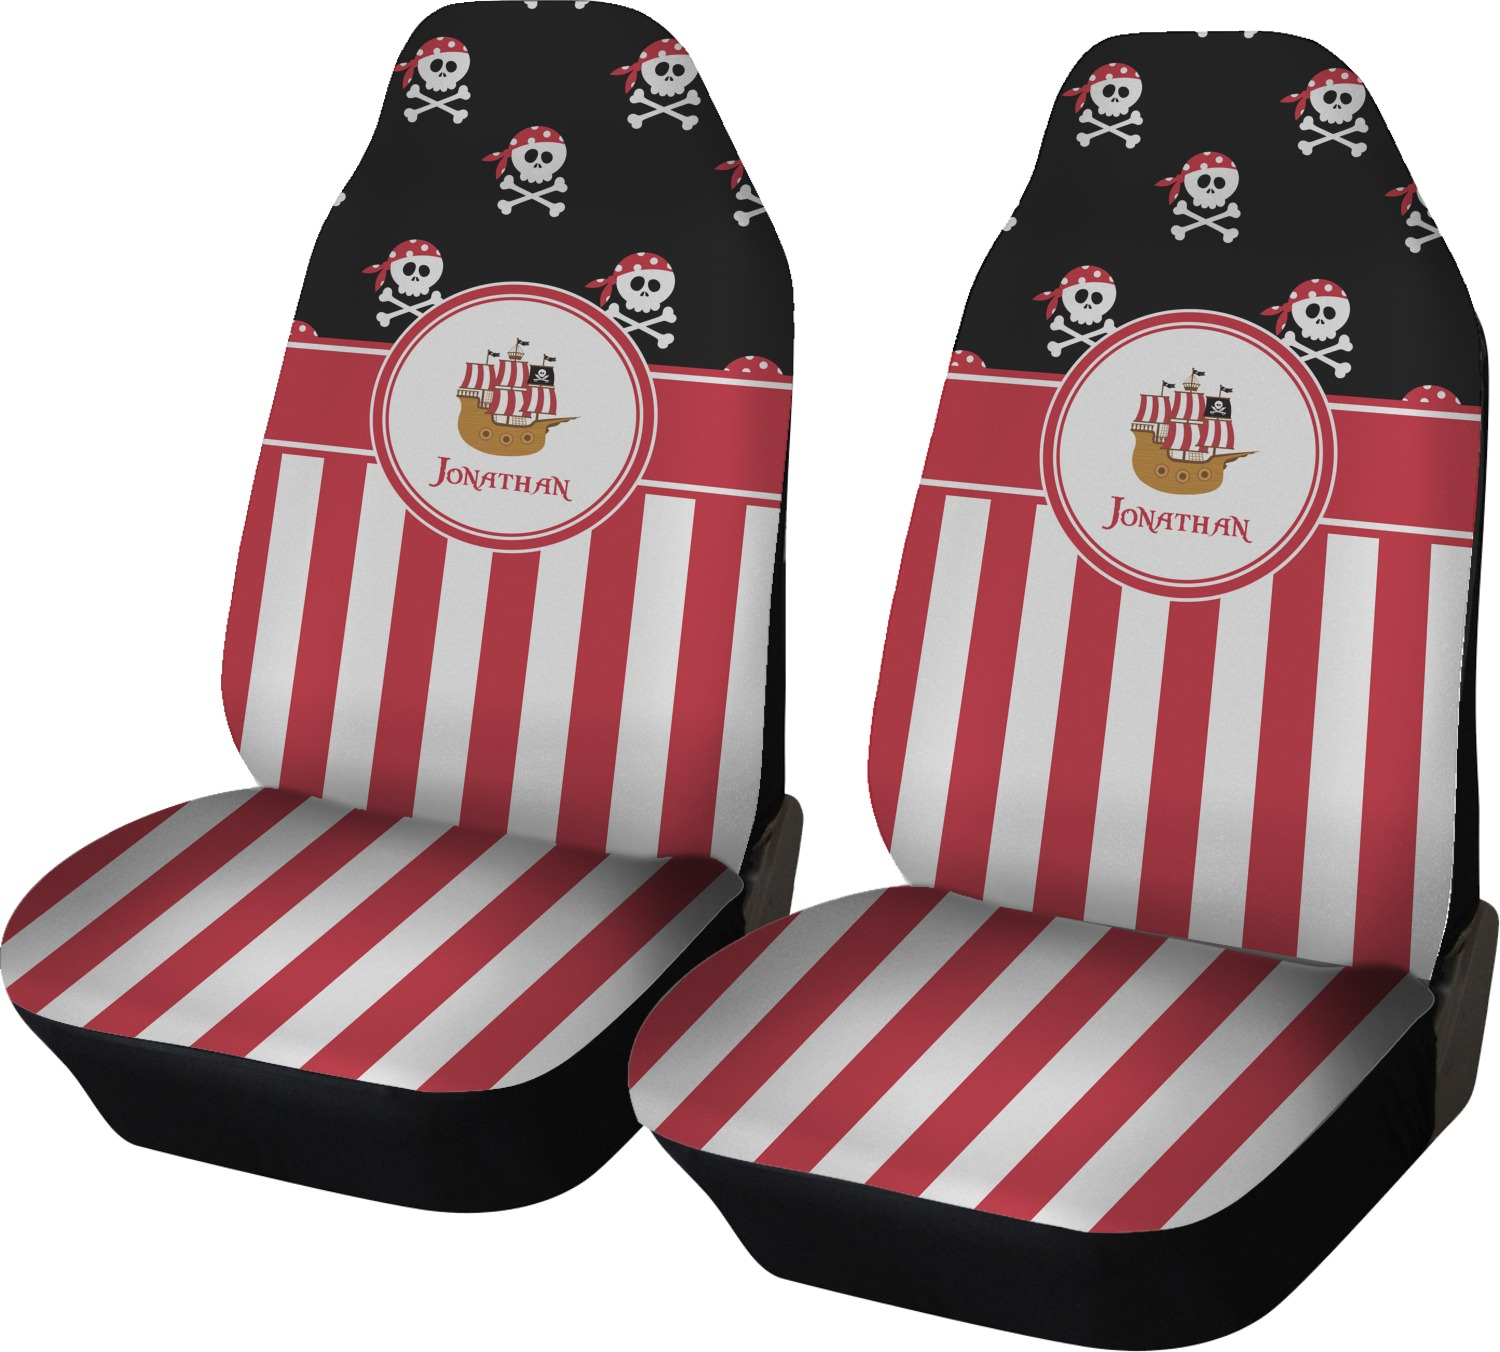 Admirable Pirate Stripes Car Seat Covers Set Of Two Personalized Dailytribune Chair Design For Home Dailytribuneorg